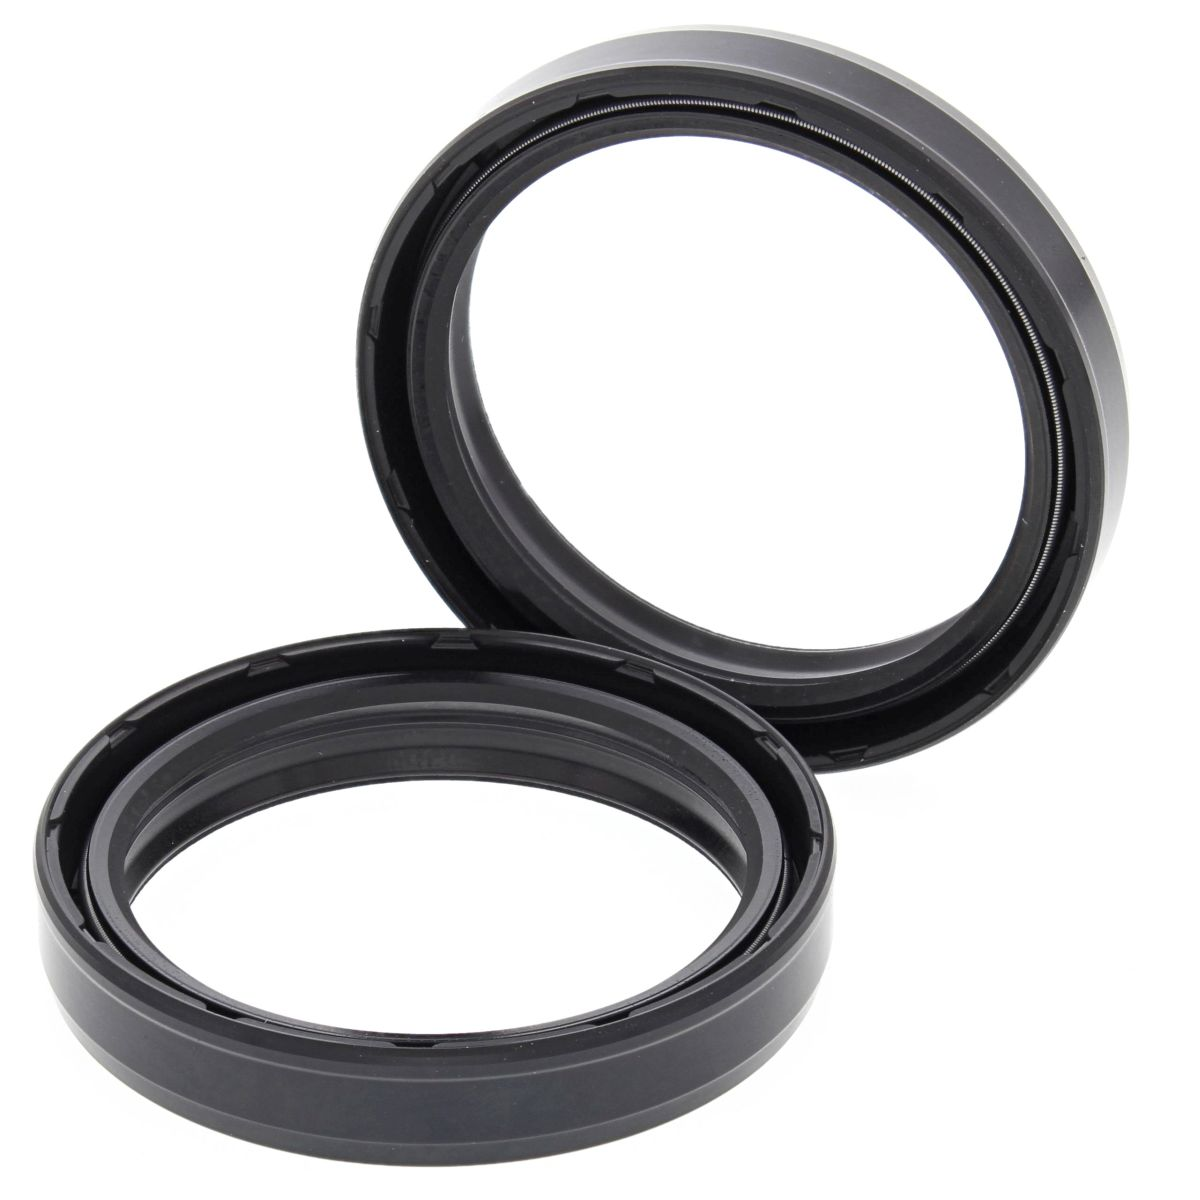 Fork oil seal kit 43x53x9 04cfcb6df58